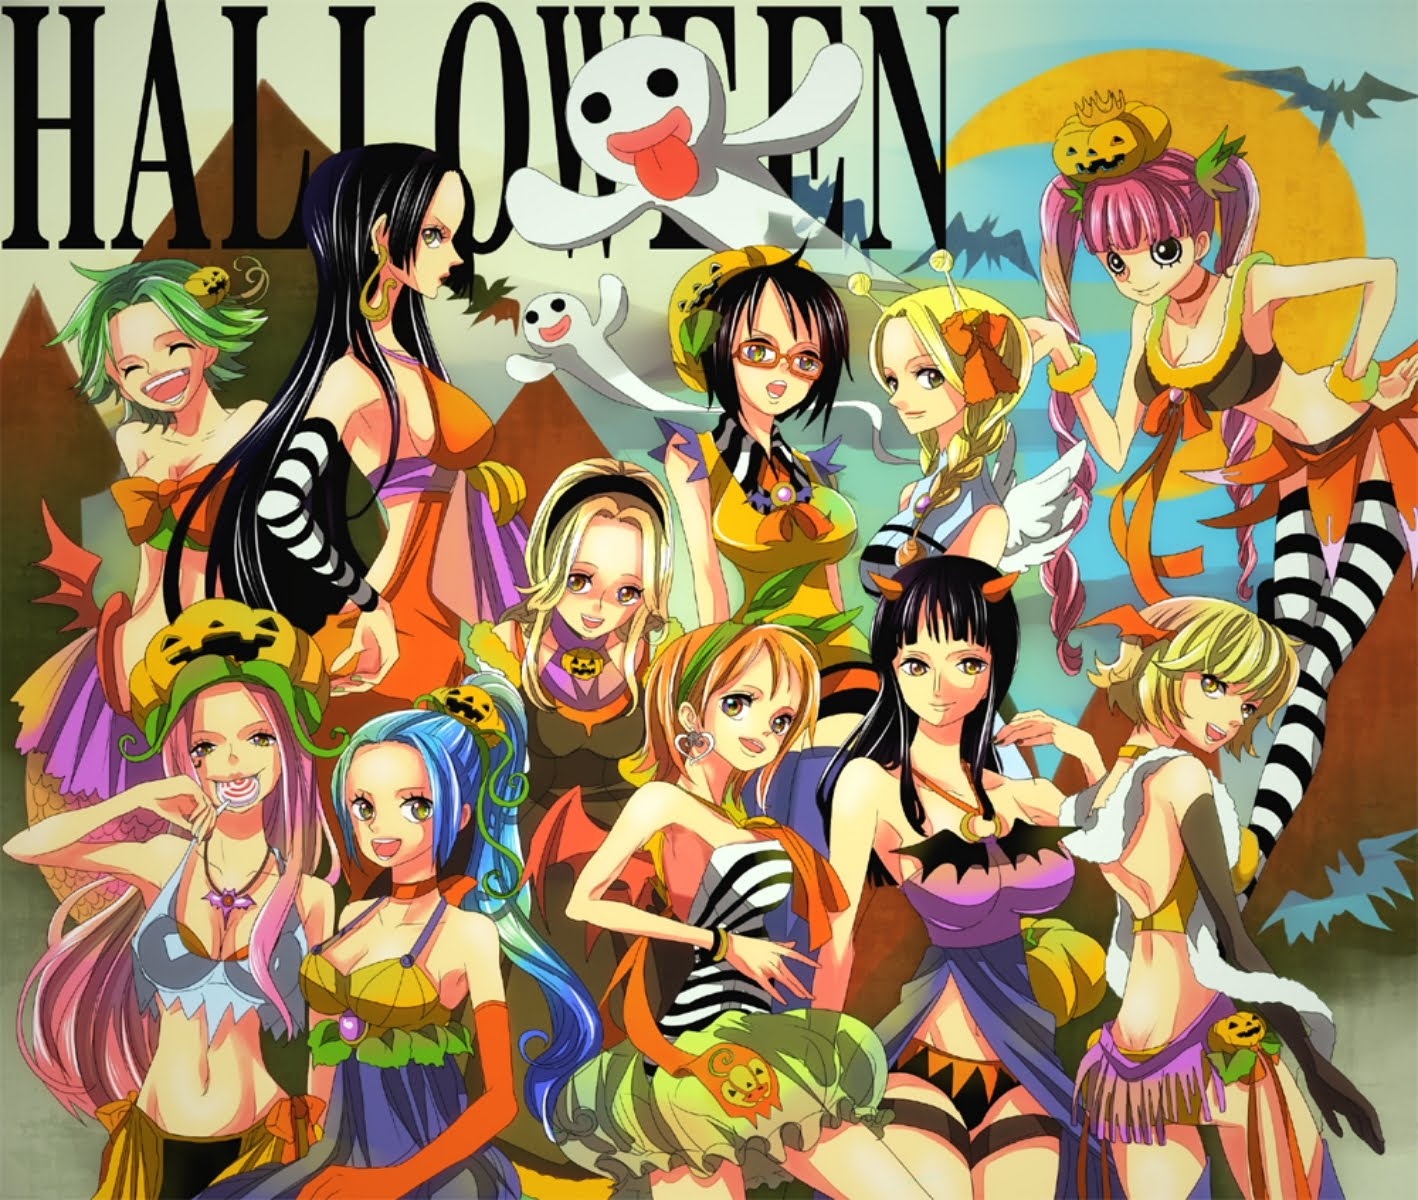 http://4.bp.blogspot.com/-Nd0pSUBvqp4/UHktGnAydUI/AAAAAAAAA8I/IYrdeKiXrWw/s1600/One_Piece_Wallpaper_In_One_Piece_Anime_wallpapers_img_onepiece_img-onepiece.blogspot.com-%25237.jpg